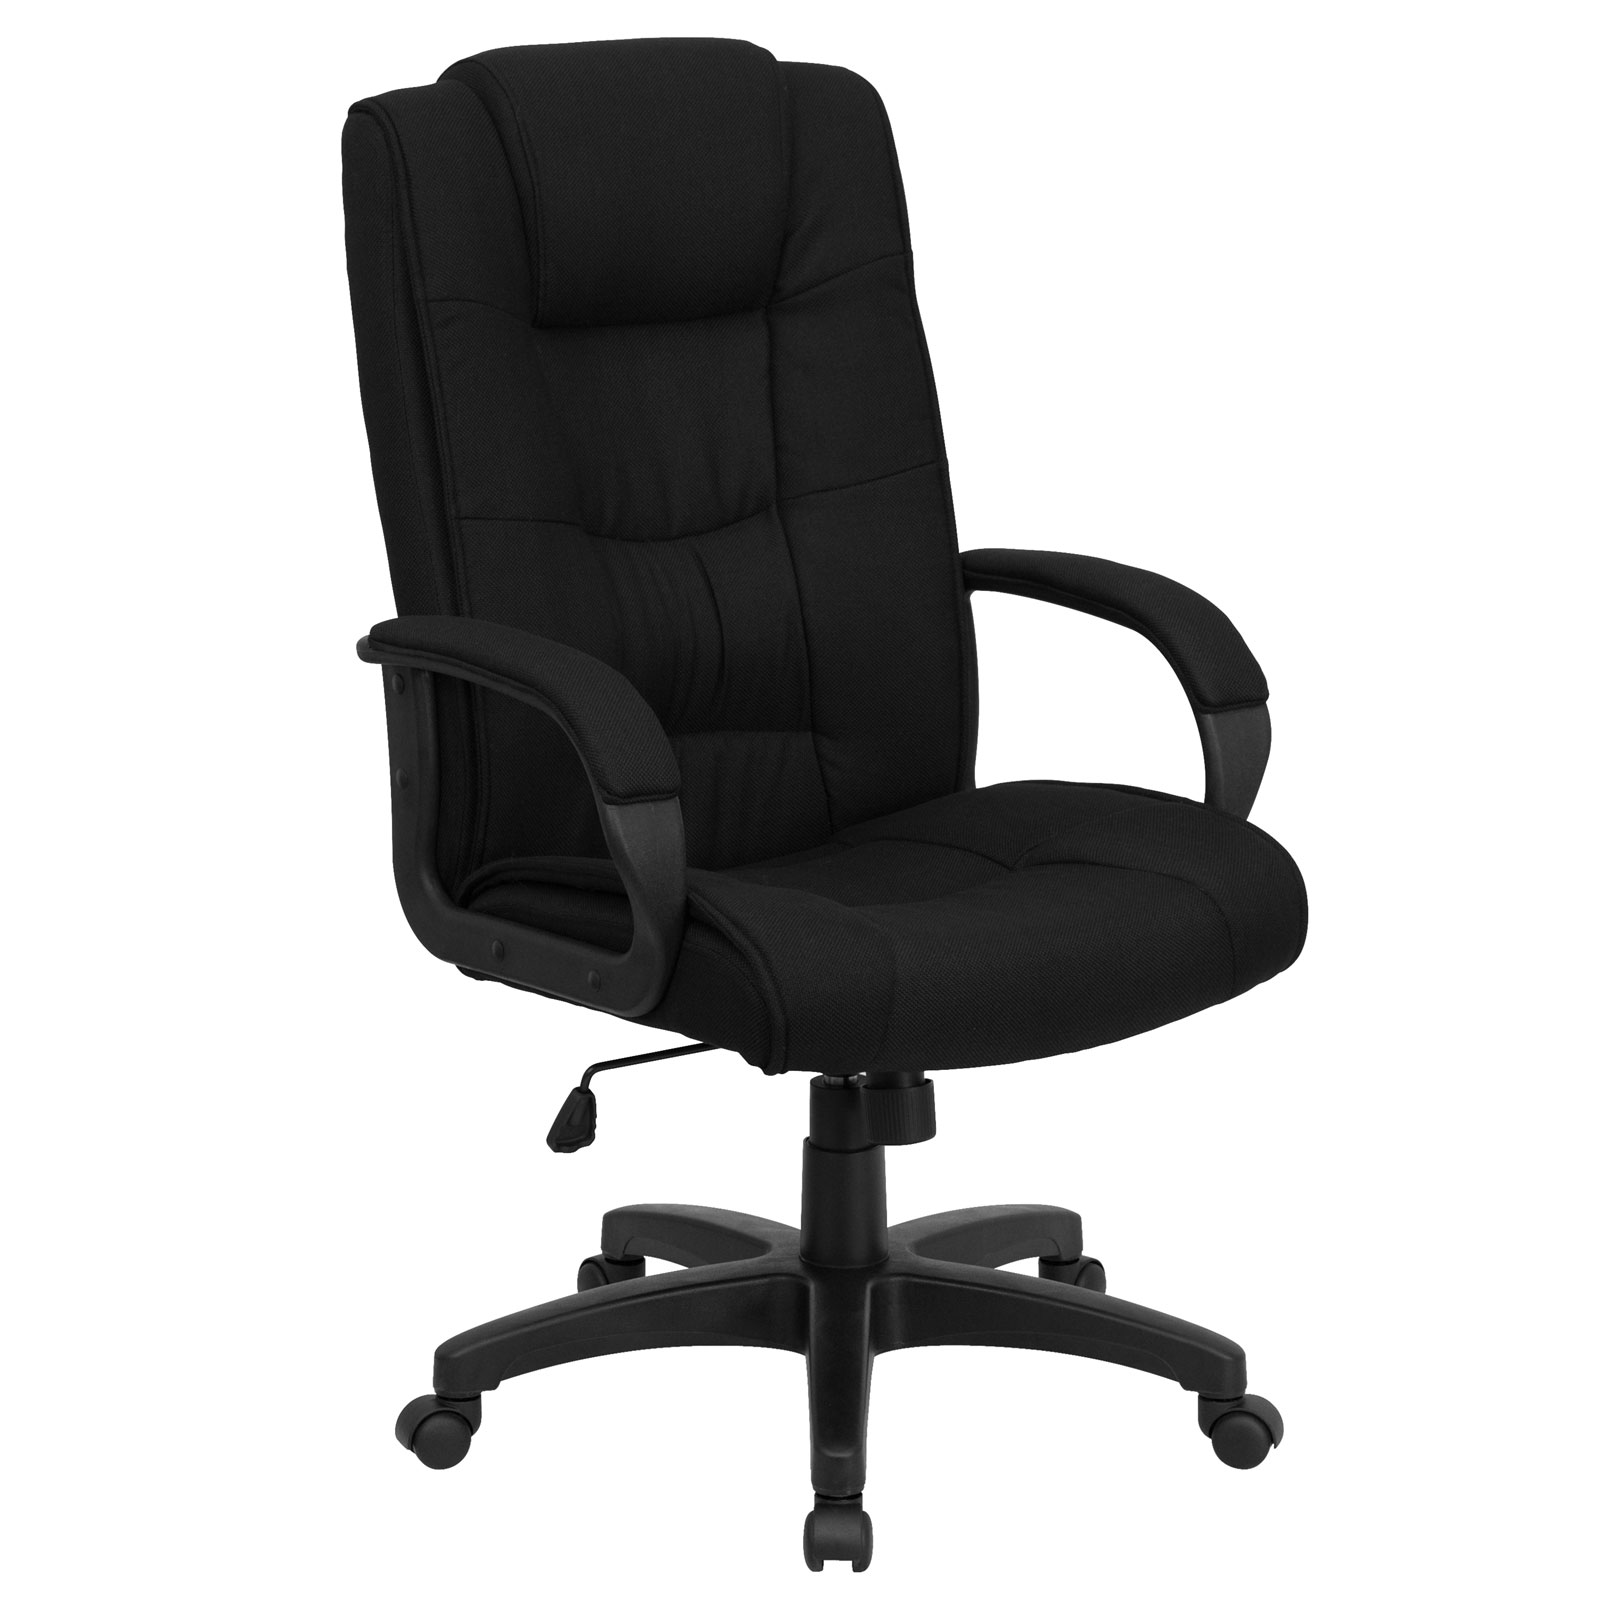 High Back Desk Chair High Back Executive Office Chair By Flash Furniture In